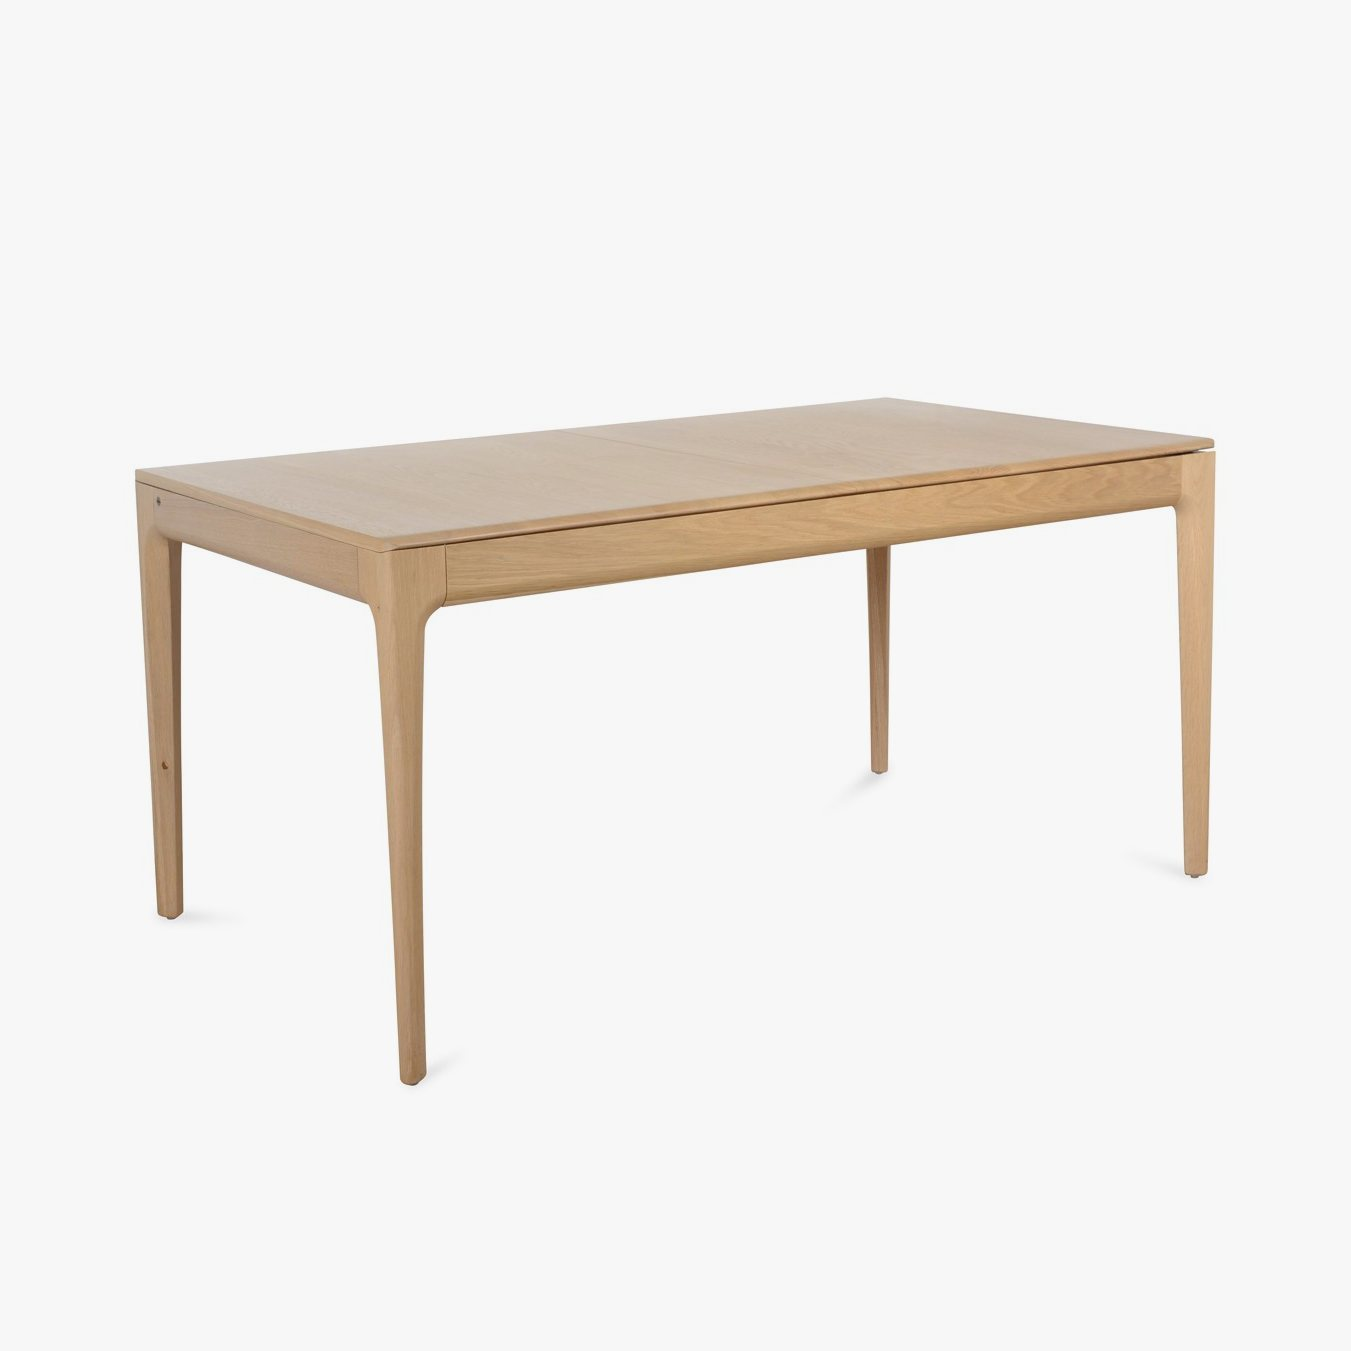 Romana extending table by ercol up interiors - Extending table ...